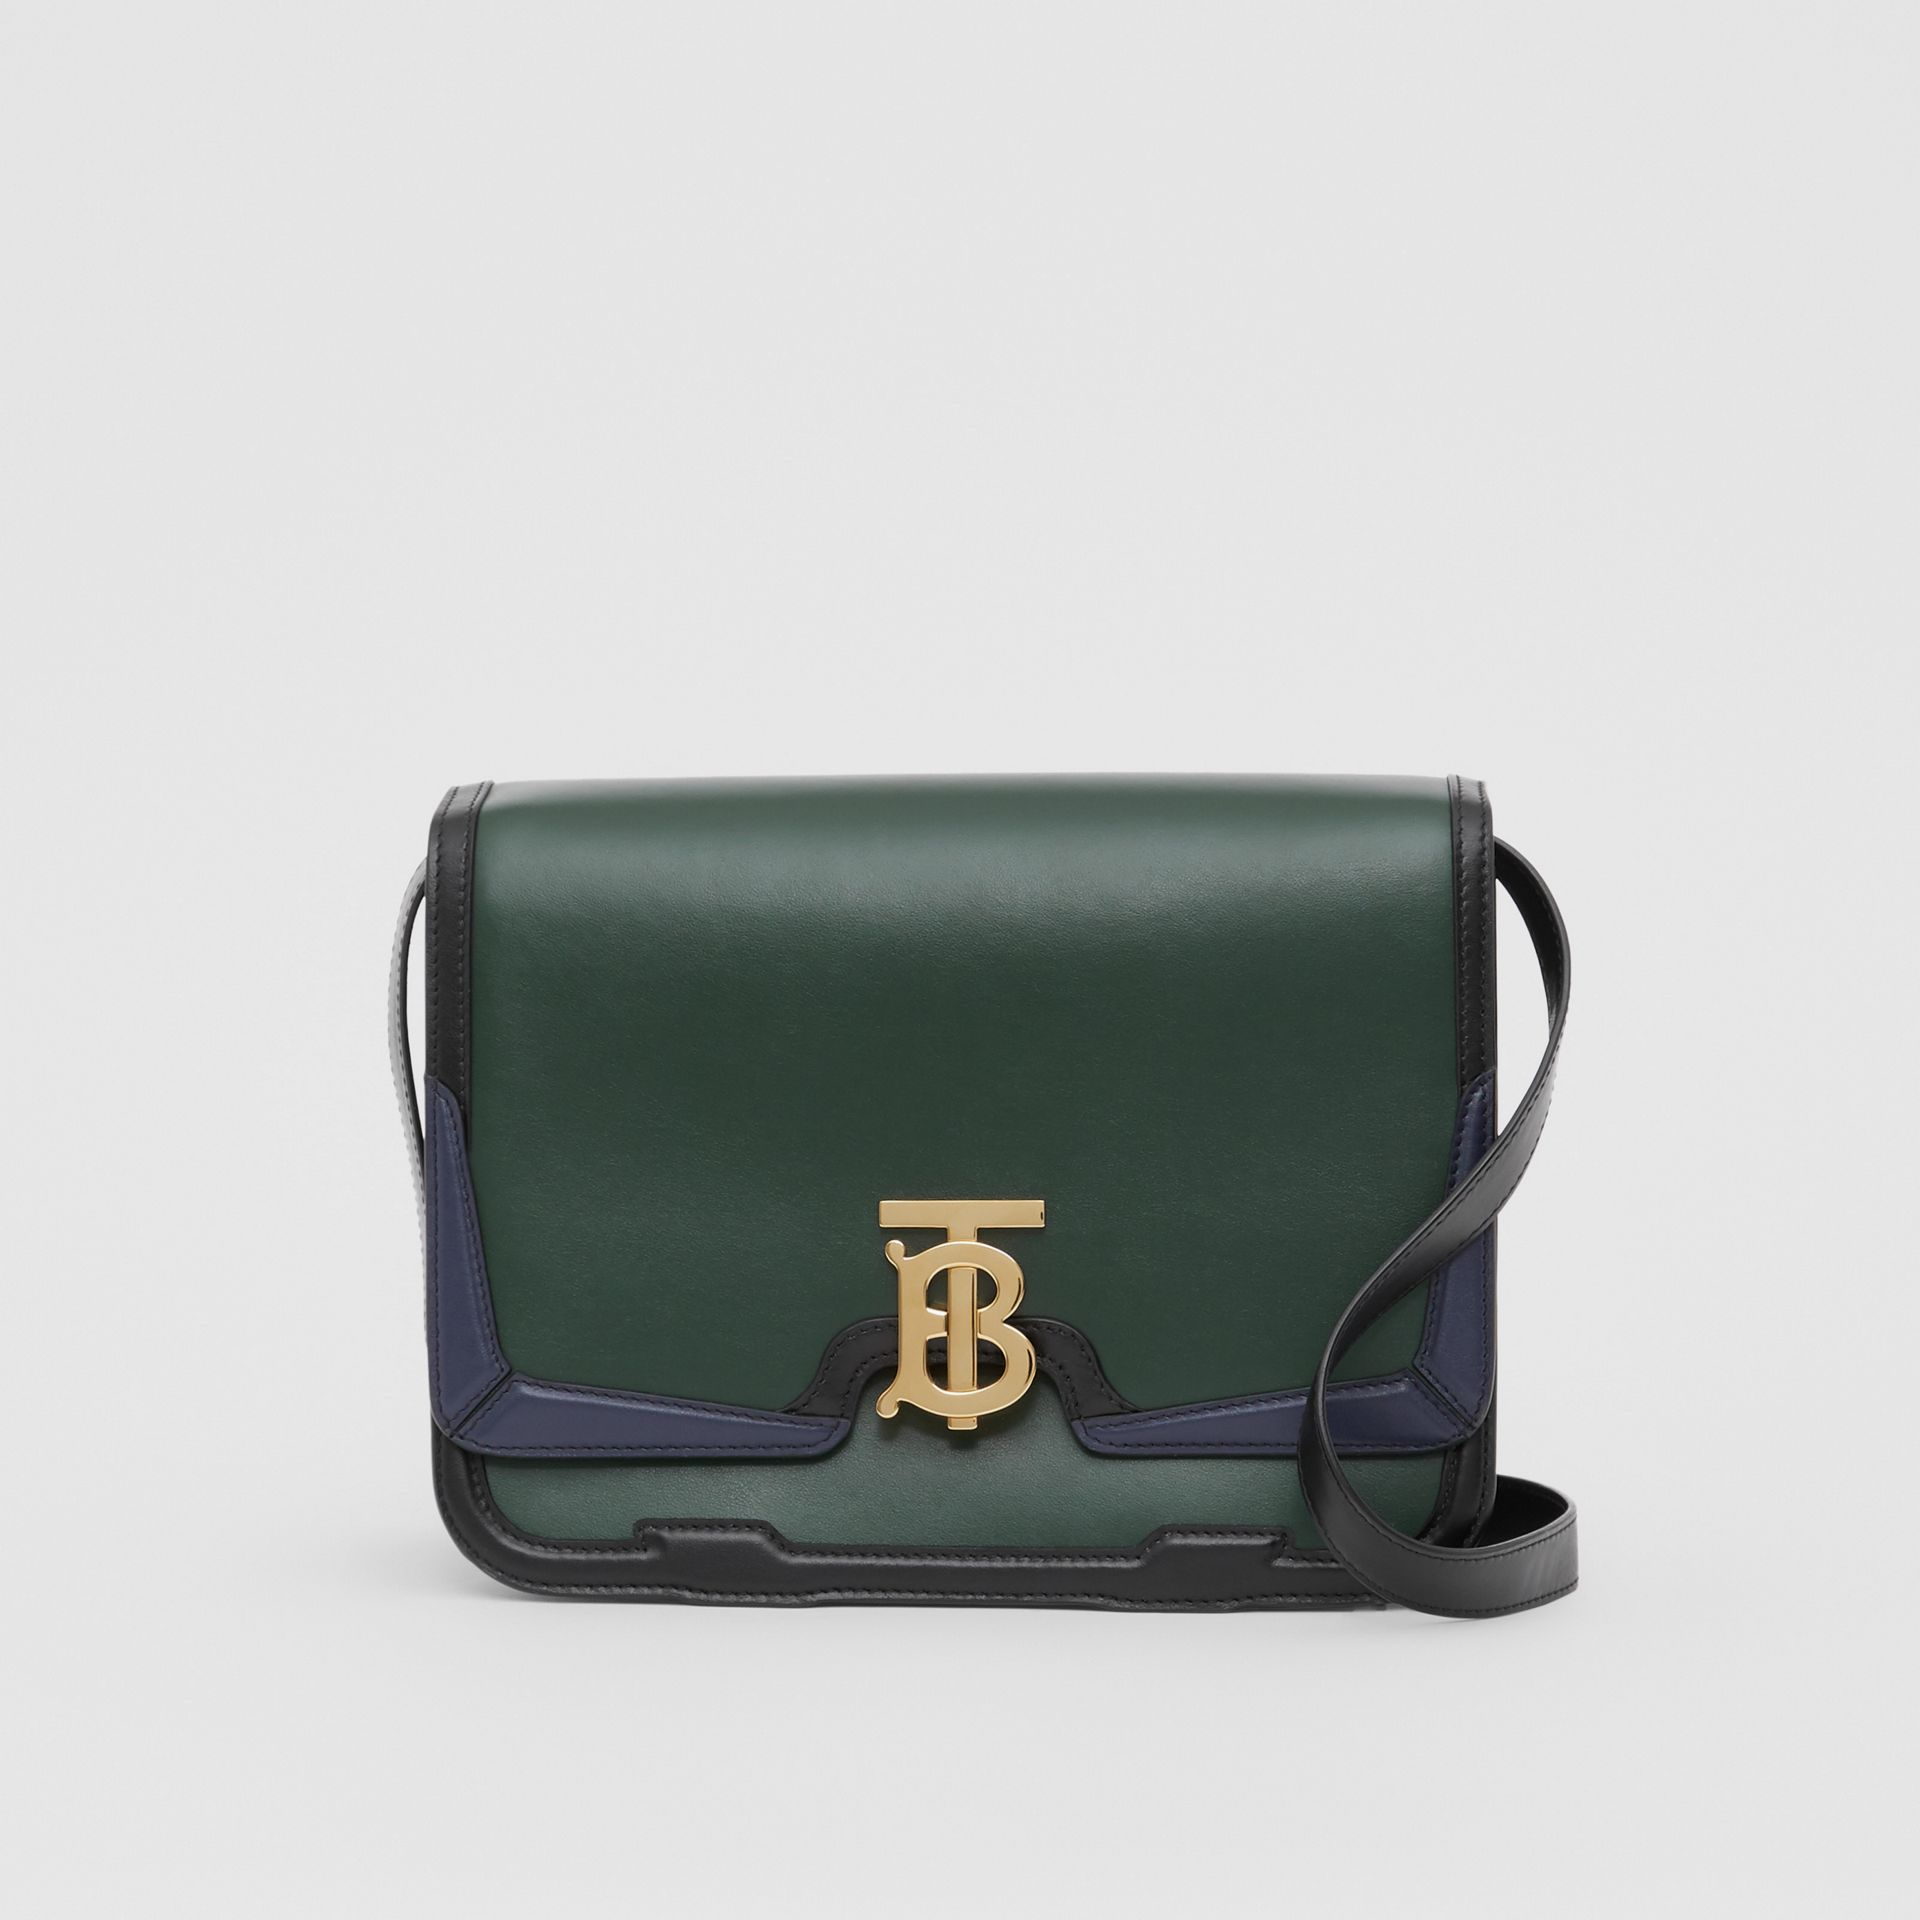 Medium Appliqué Leather TB Bag in Dark Pine Green - Women | Burberry United Kingdom - gallery image 0